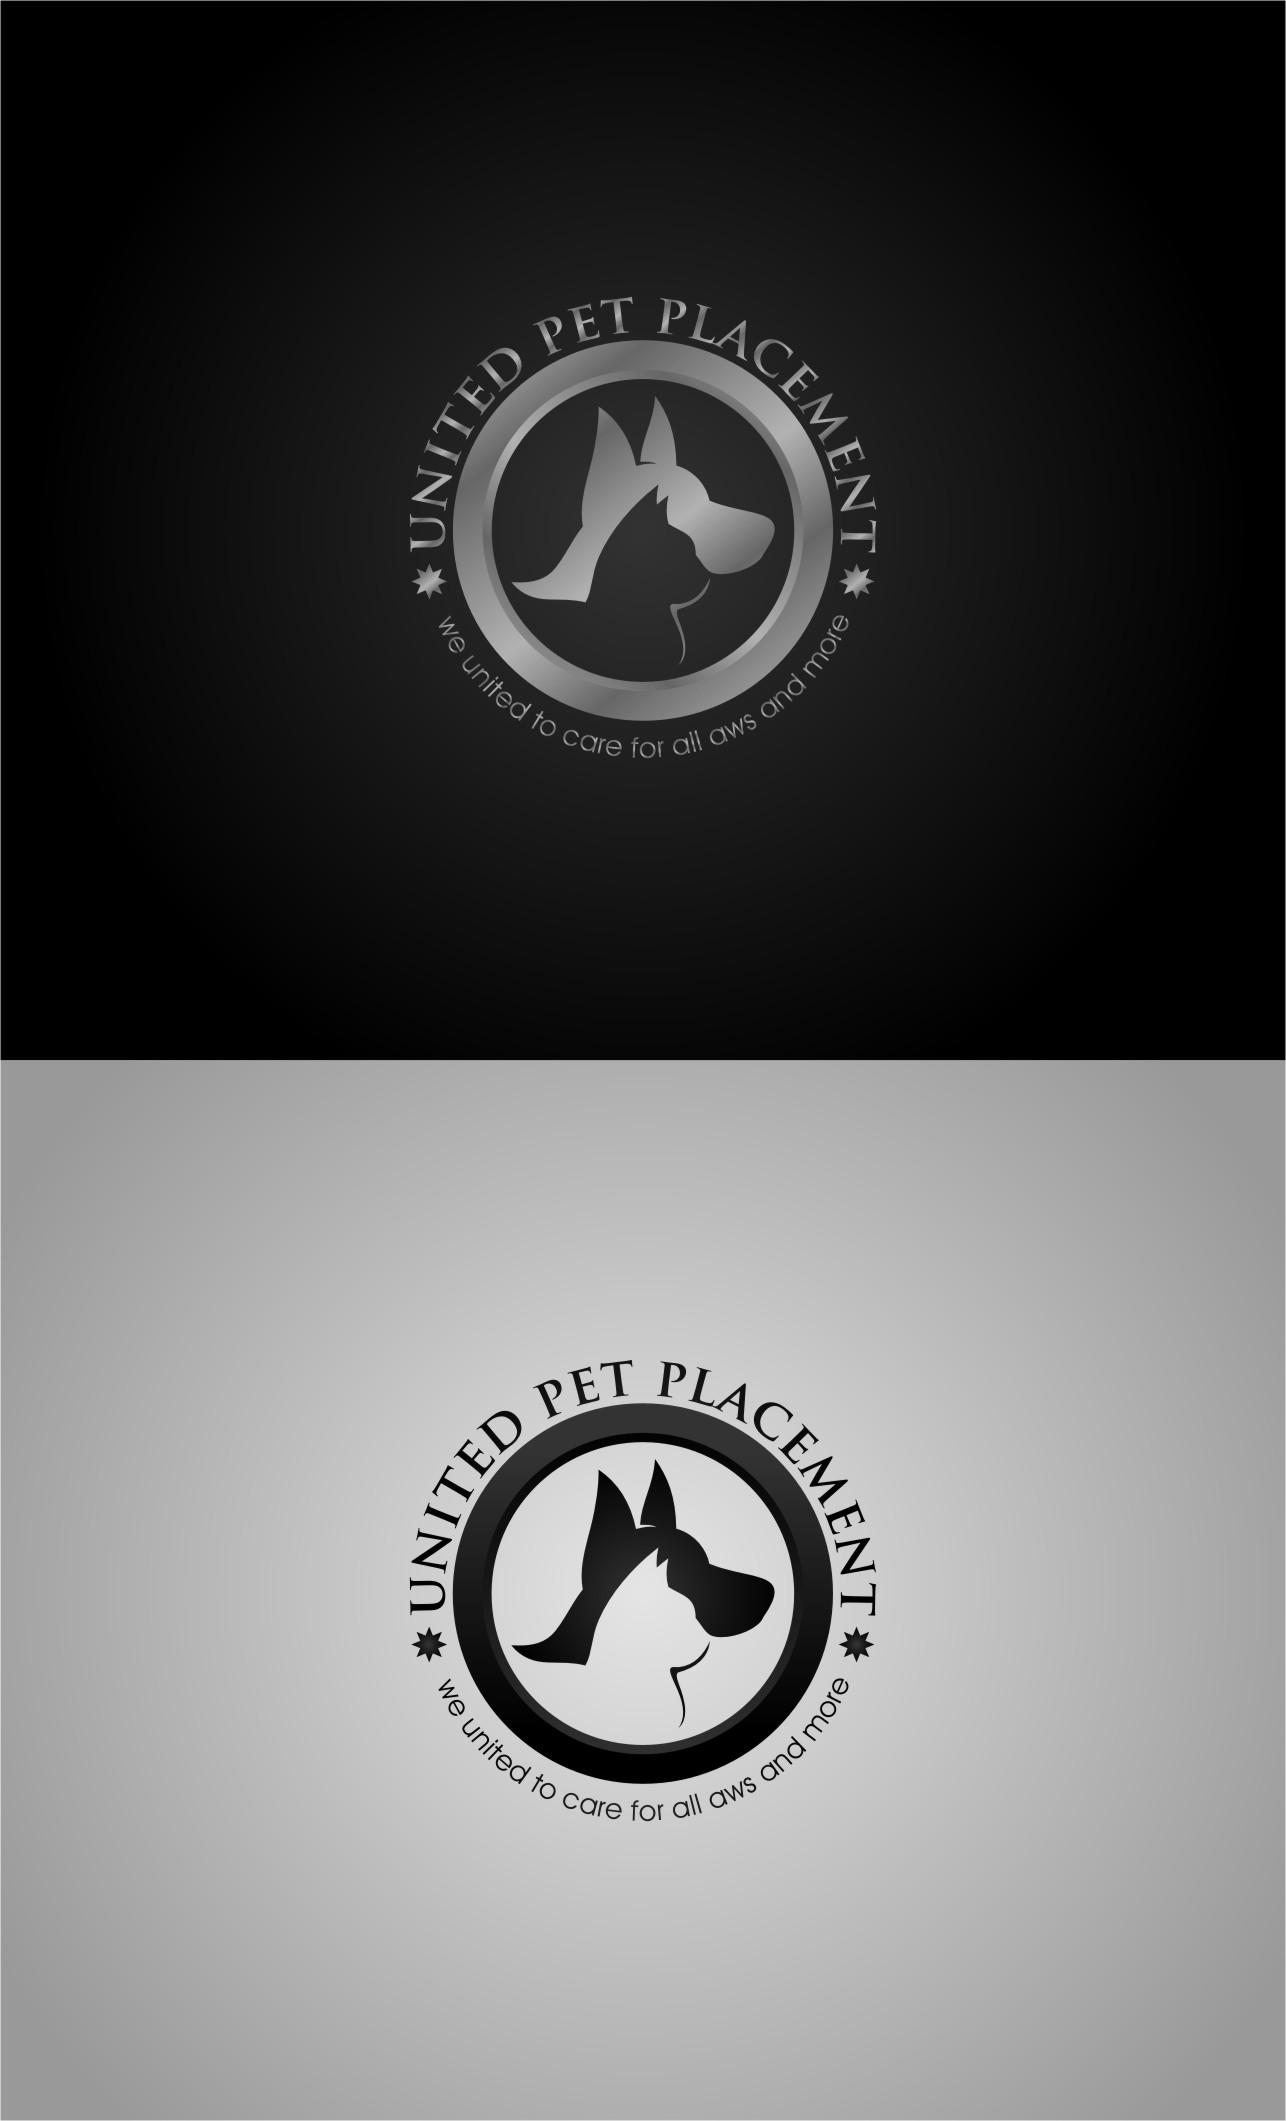 Logo Design by Ngepet_art - Entry No. 71 in the Logo Design Contest Artistic Logo Design for united pet placement.